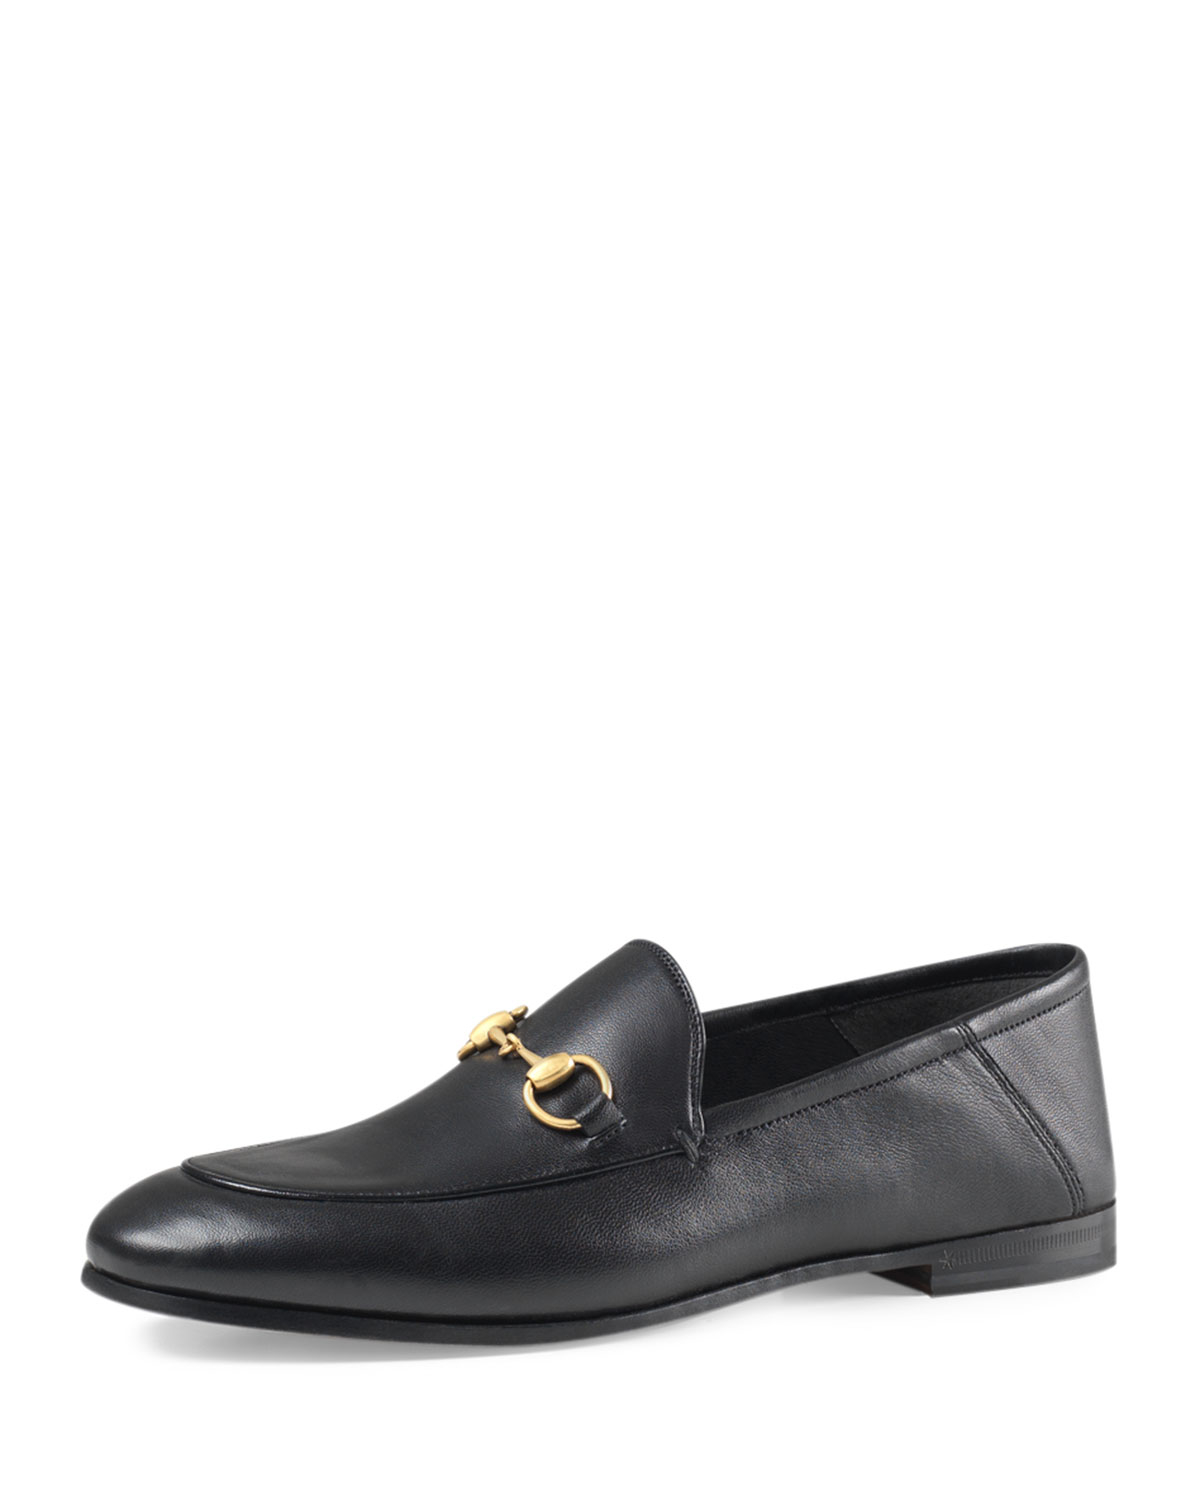 9dce80119f1 Lyst - Gucci Brixton Leather Horsebit Loafer in Black for Men